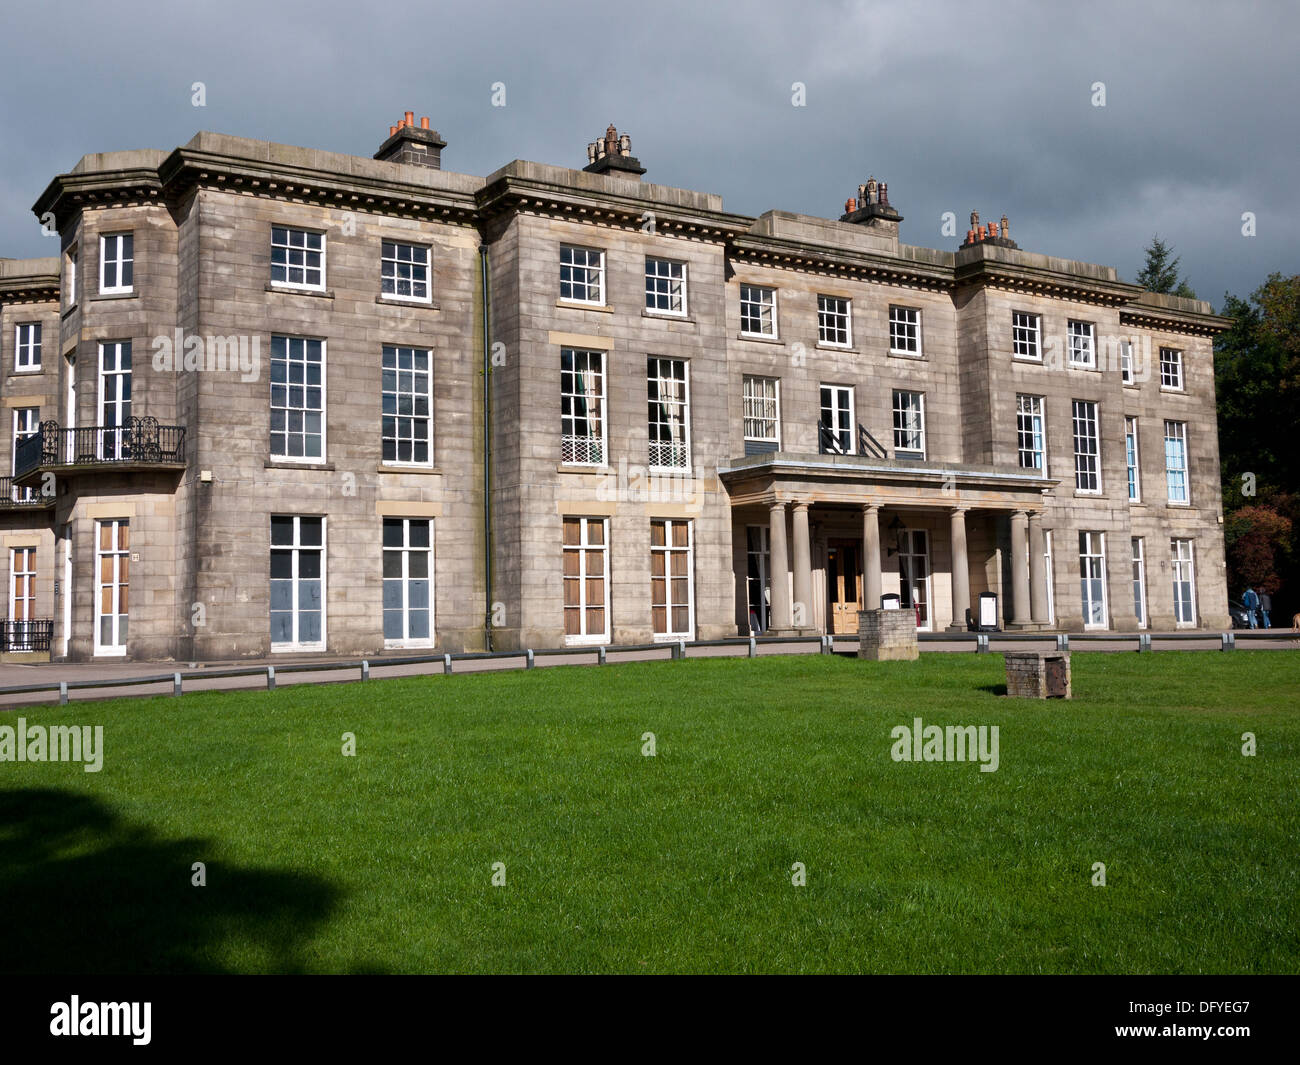 Haigh Hall, Wigan, Greater Manchester, UK. - Stock Image